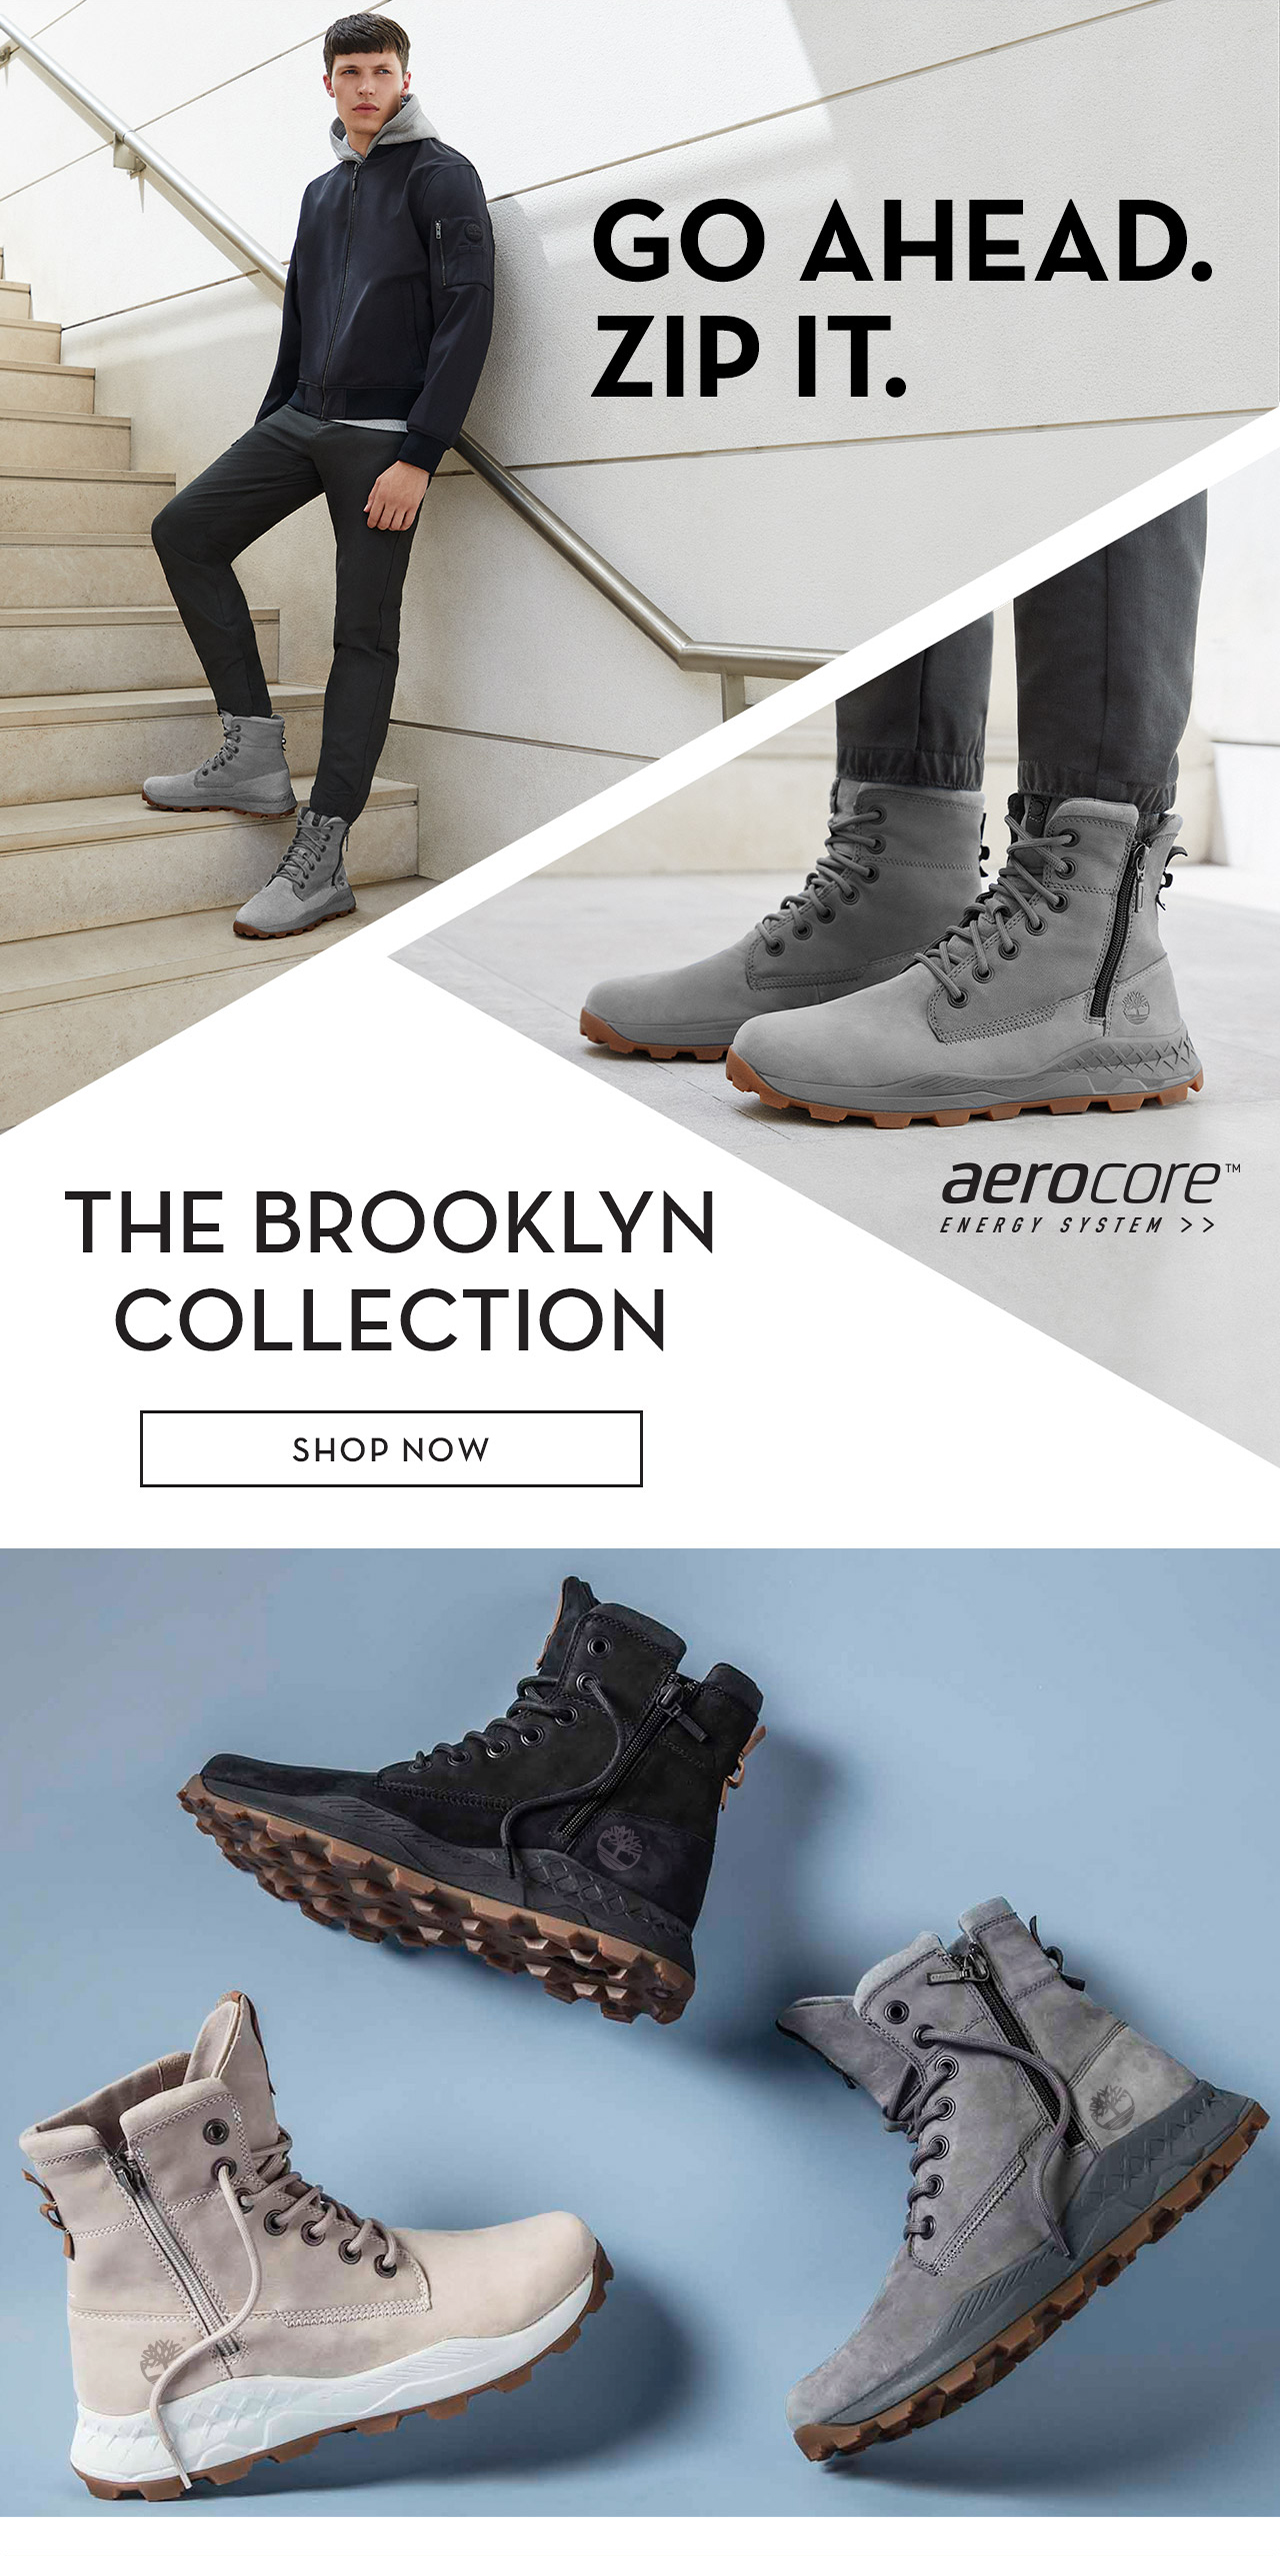 Go Ahead. Zip It. The Brooklyn Collection Shop Now